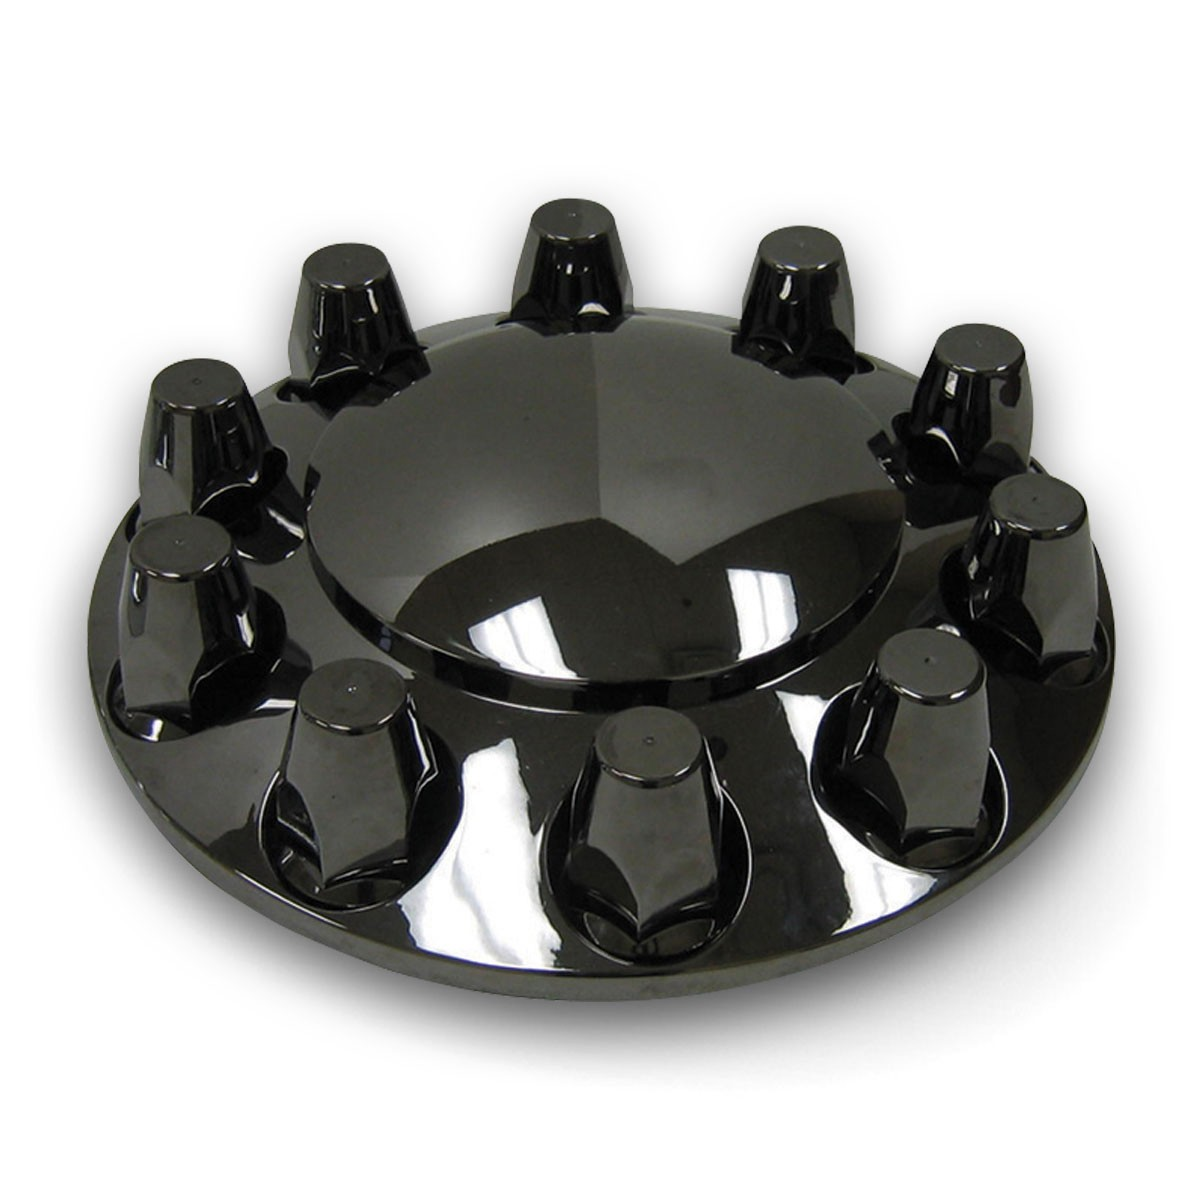 Black Chrome Abs Plastic Front Hub Cover Kit W Removable